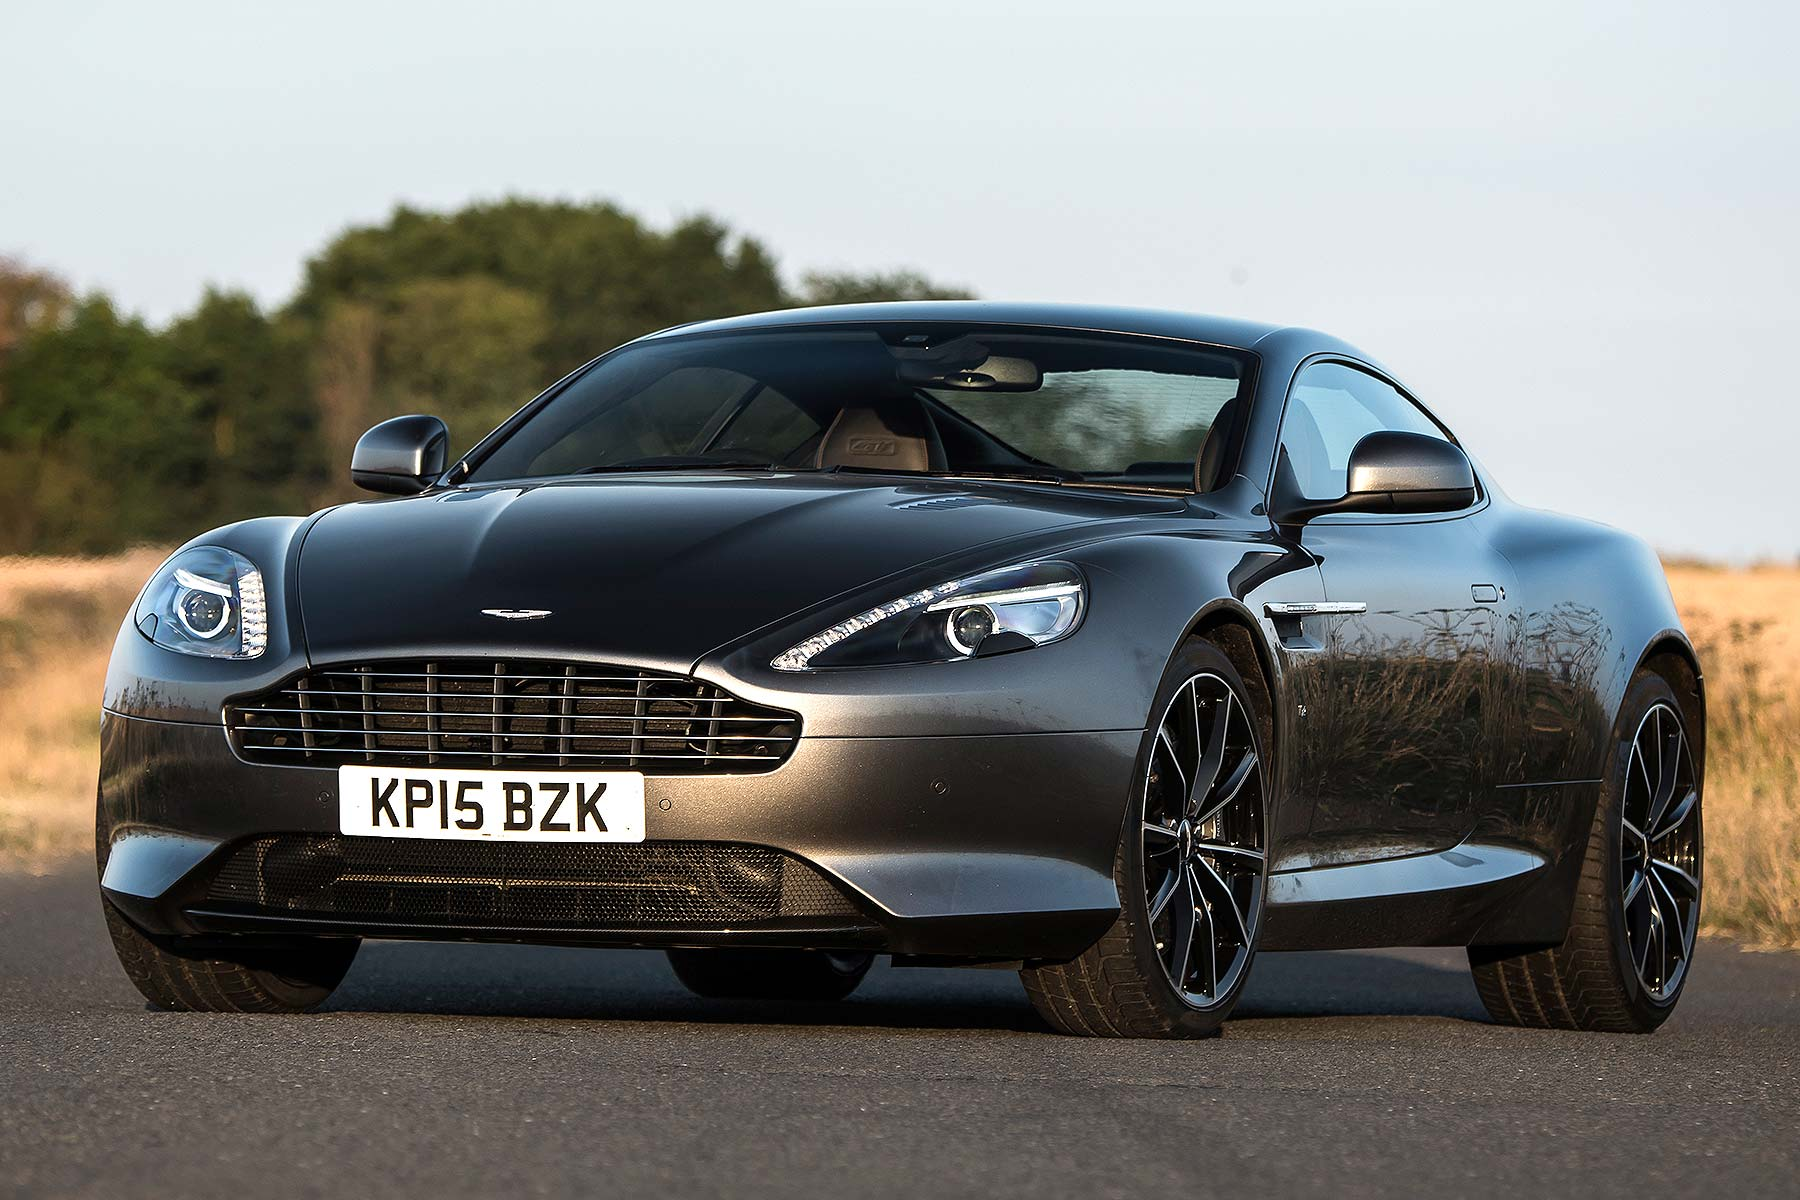 aston martin db9 gt review: 2015 first drive | motoring research